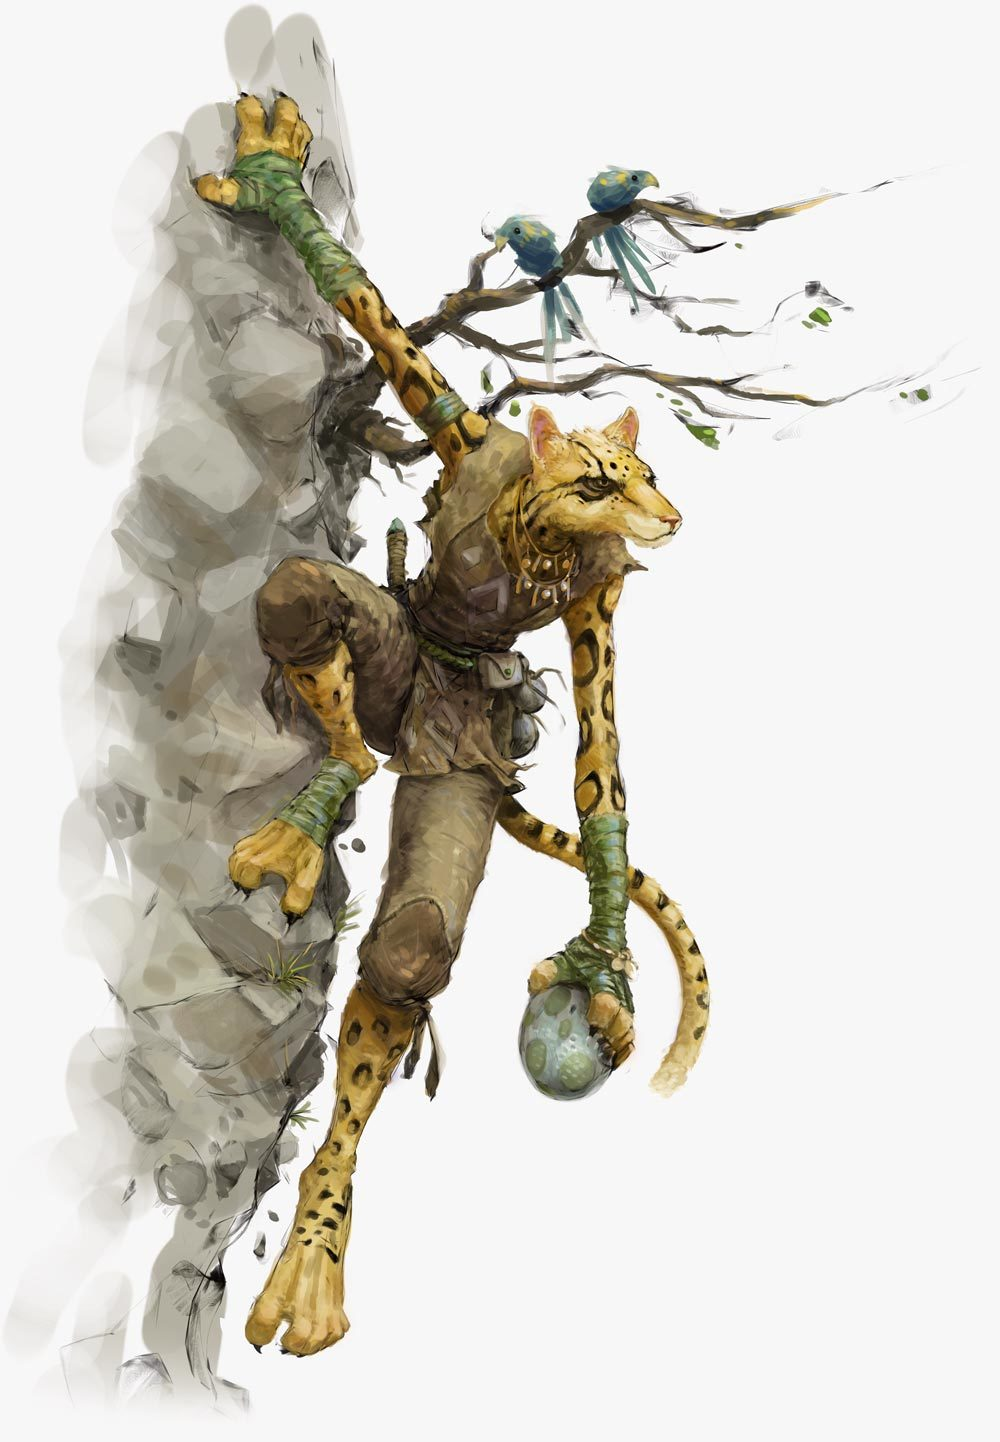 Tabaxi | Forgotten Realms Wiki | FANDOM powered by Wikia